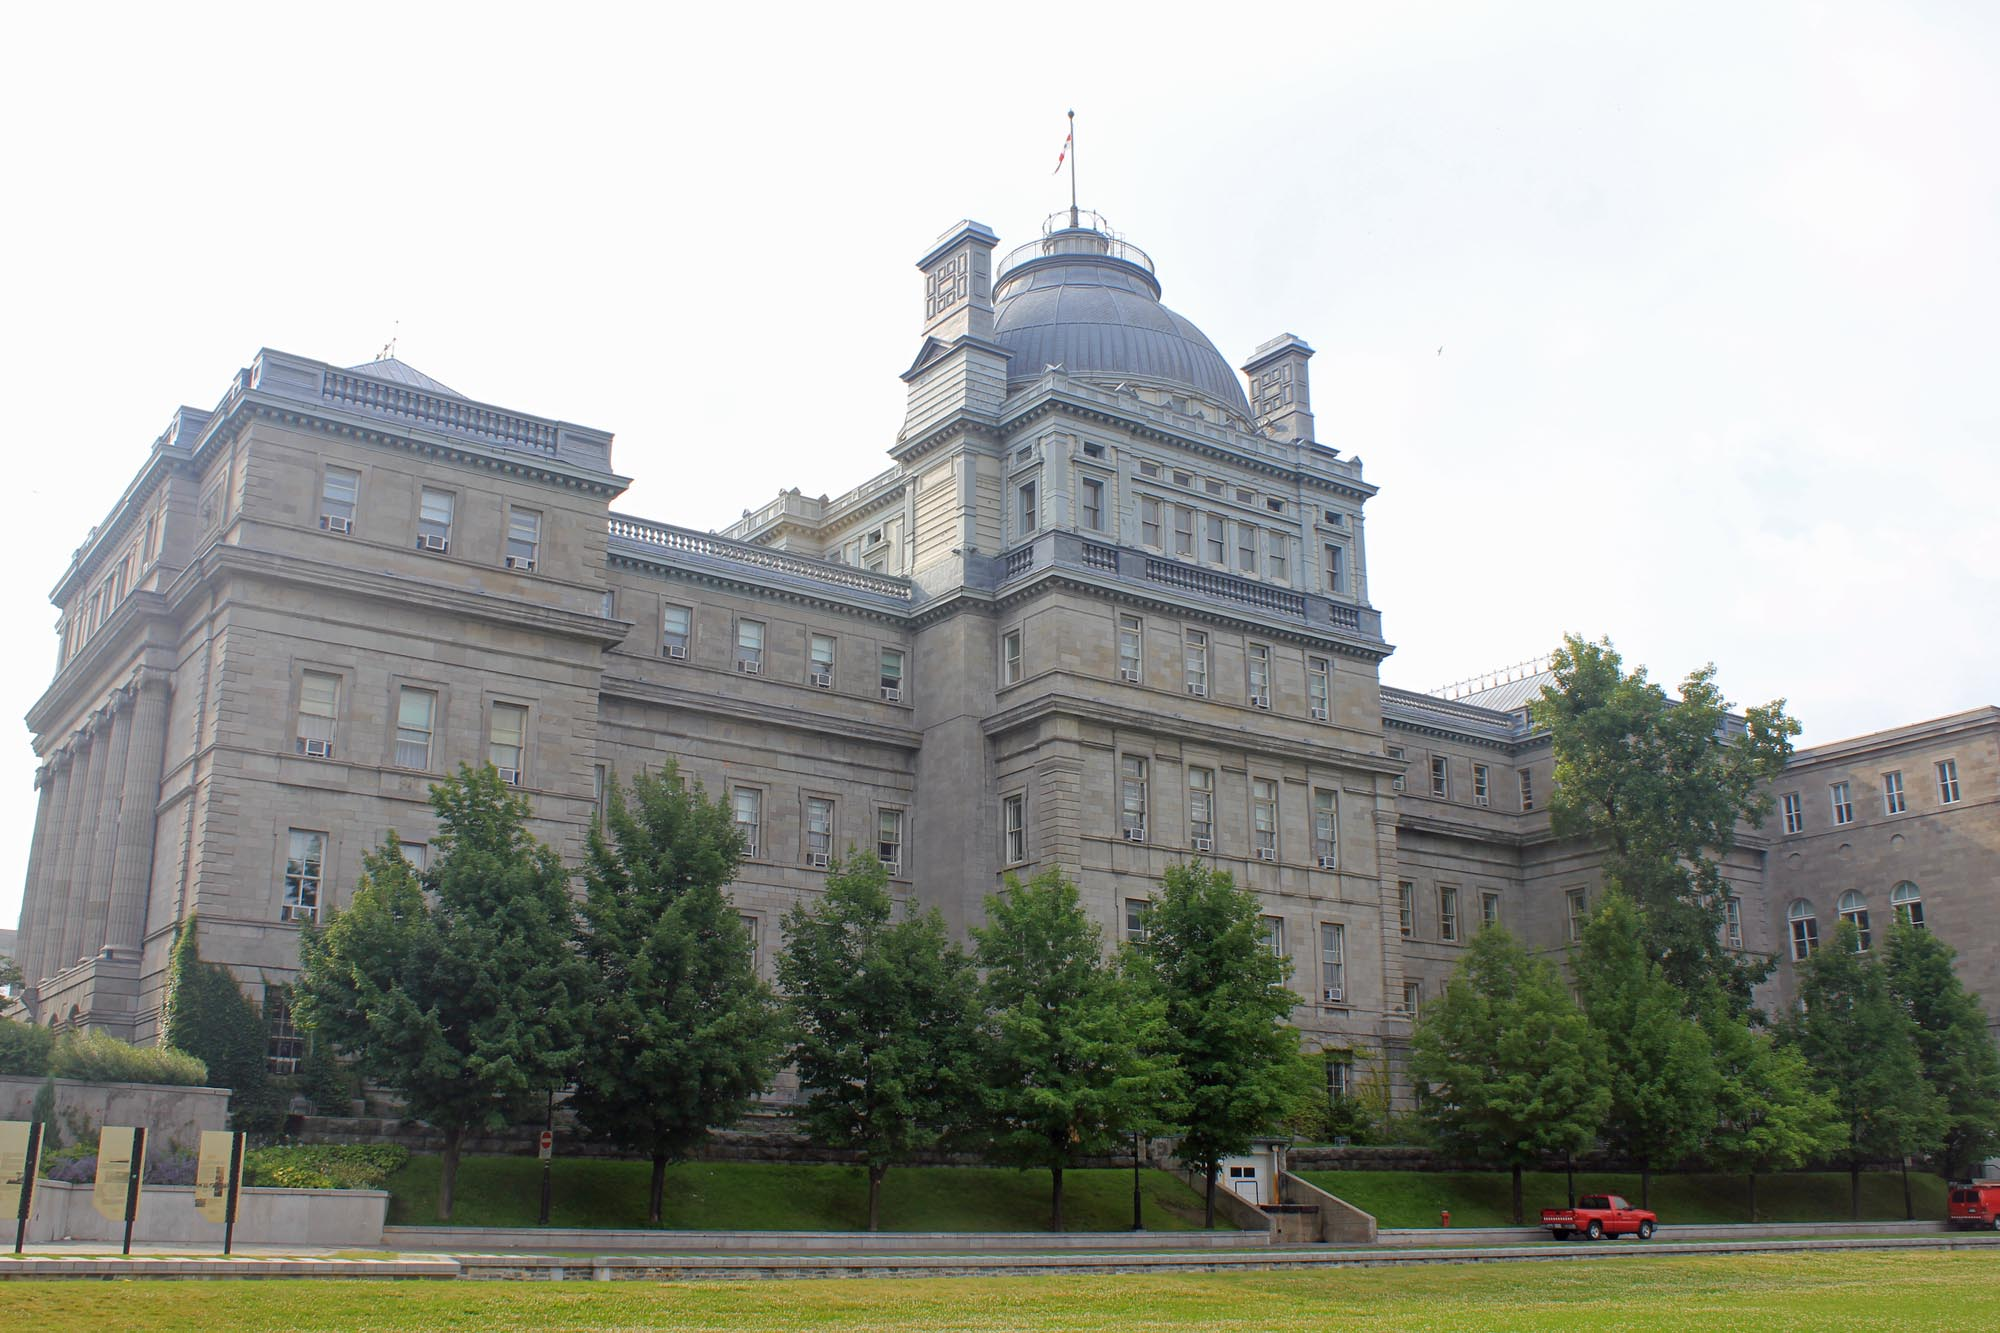 Montreal, old justice Palace